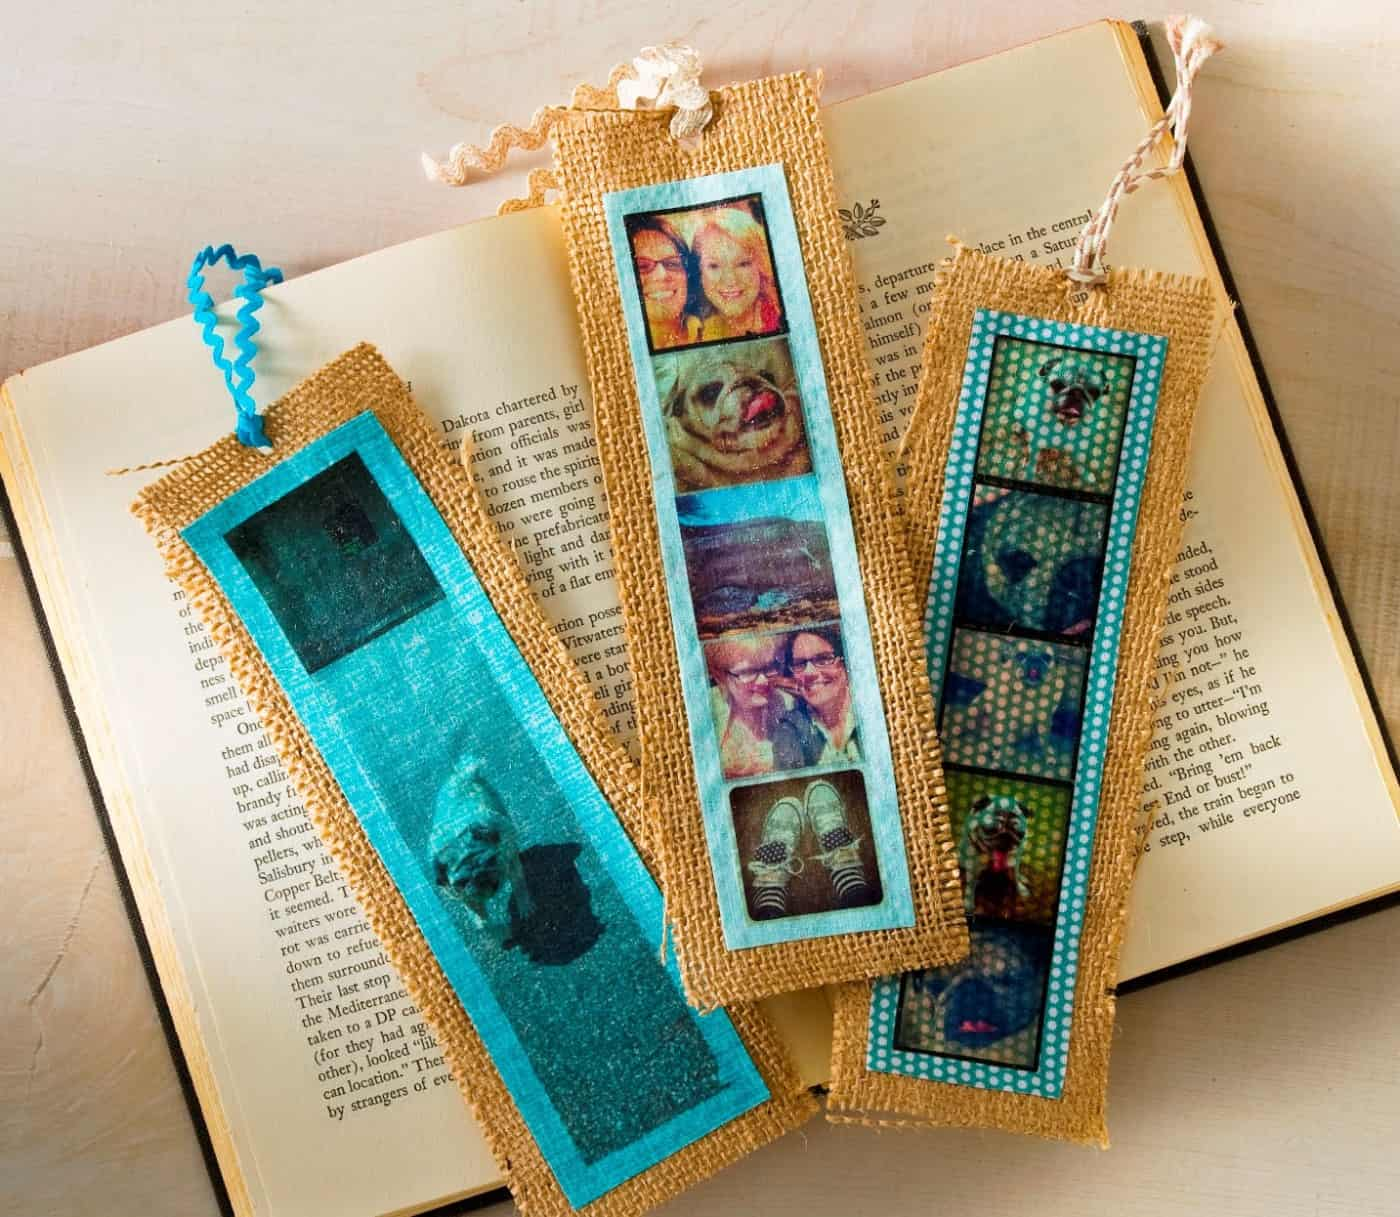 Make some personalized DIY bookmarks using your favorite Instagram photos! These are the perfect gift idea - and so easy to do.